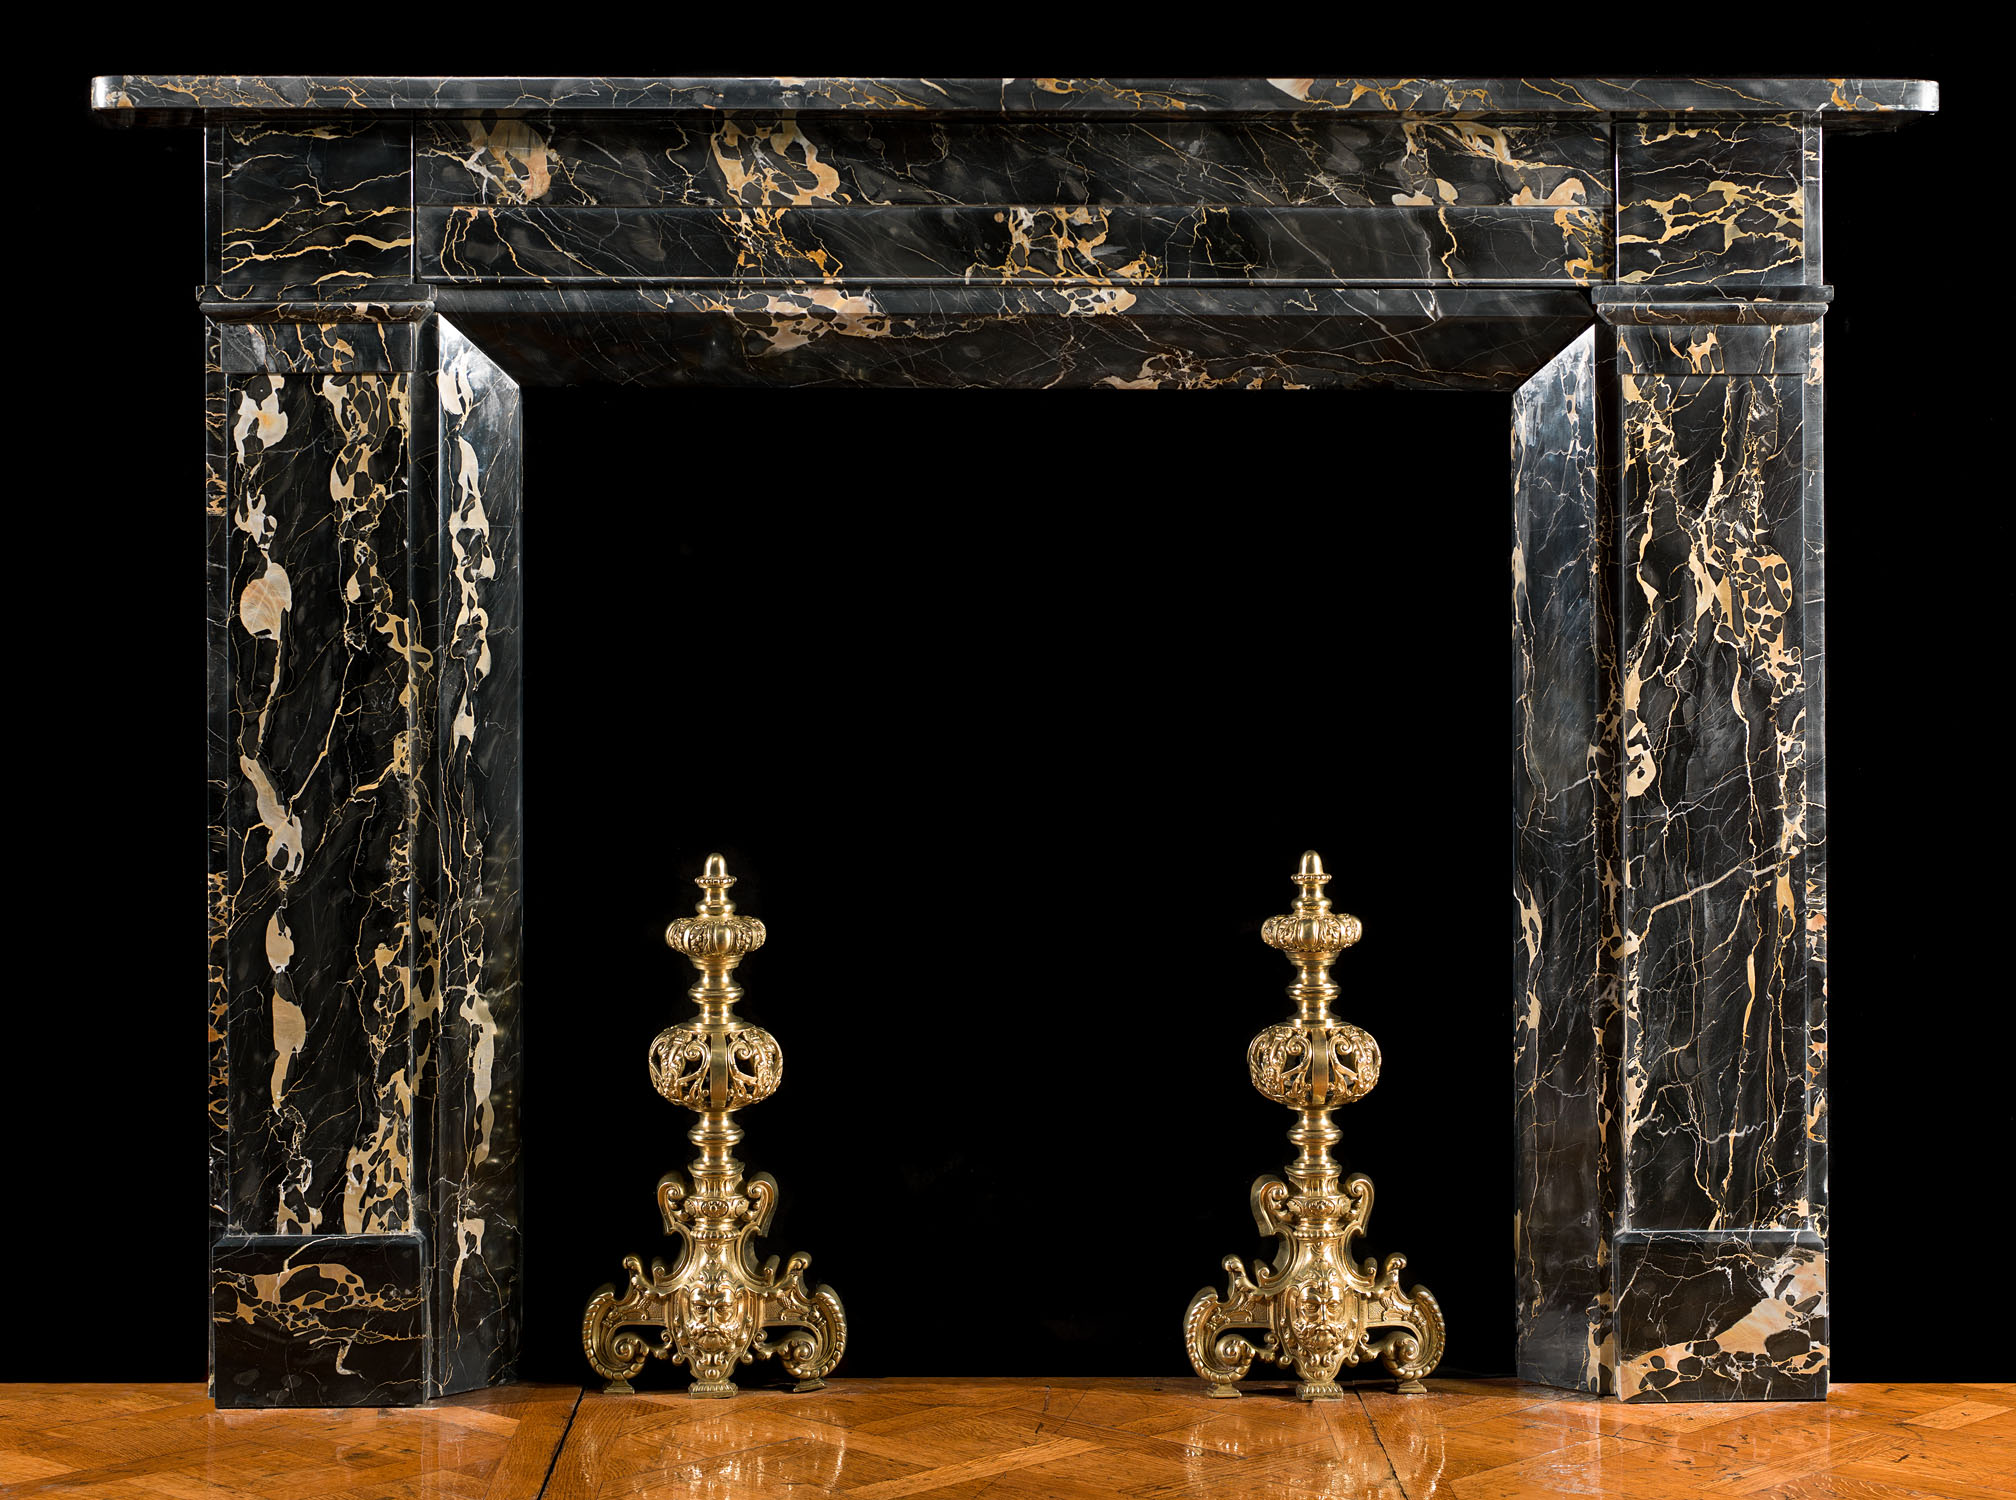 A Regency Fireplace Mantel in fine Portoro Marble